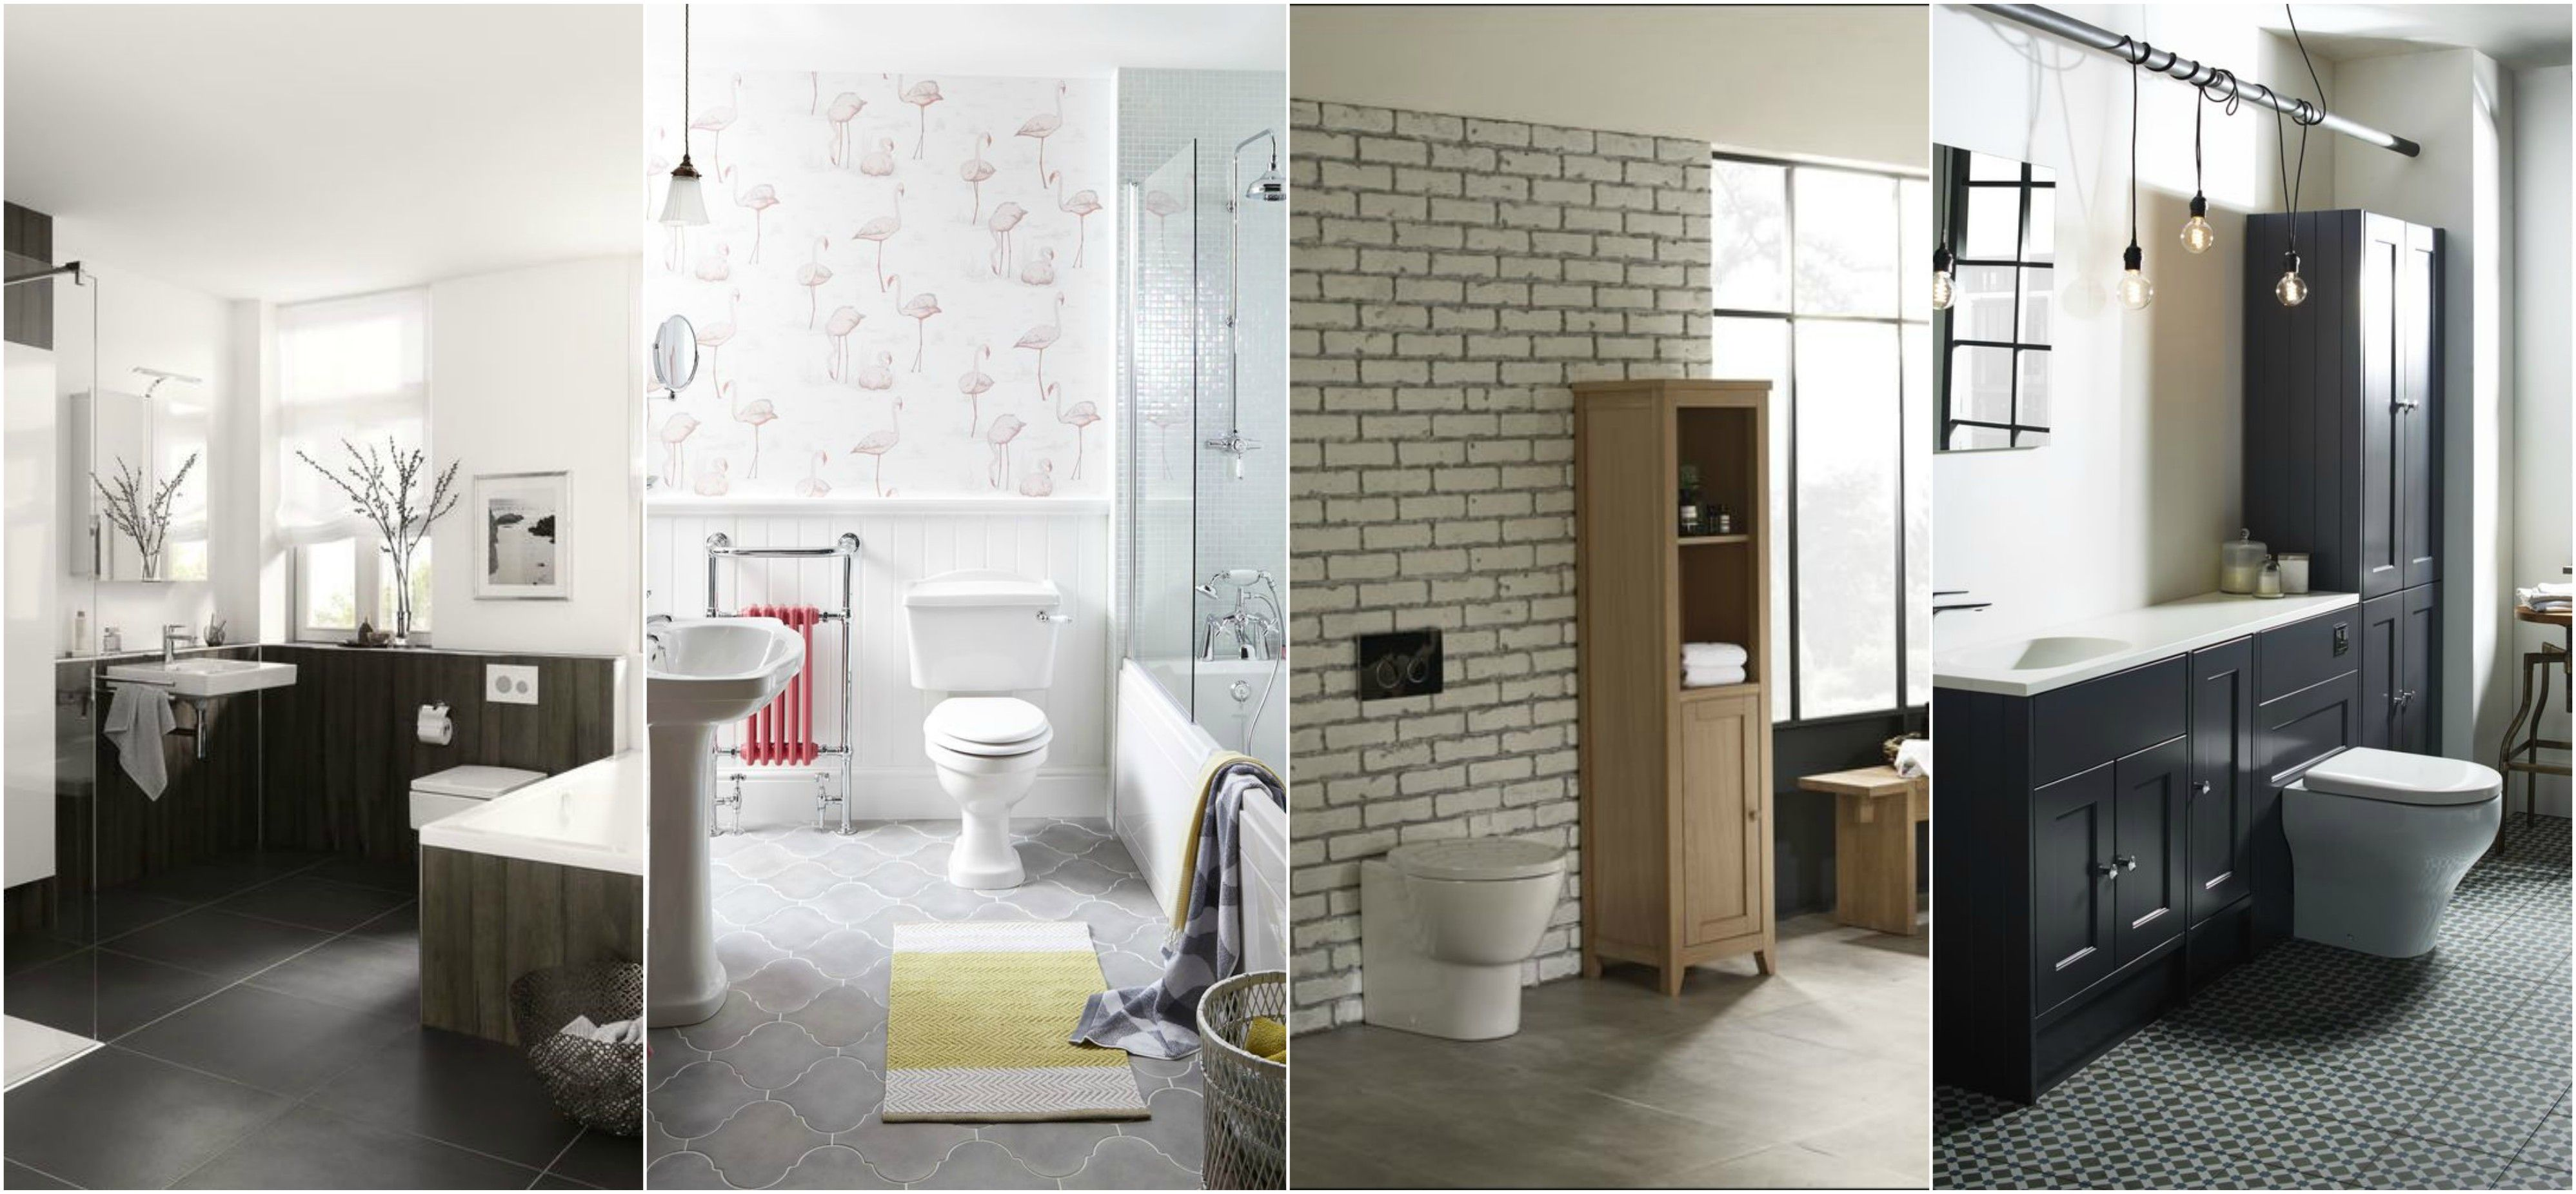 Image result for bathroom ideas collage